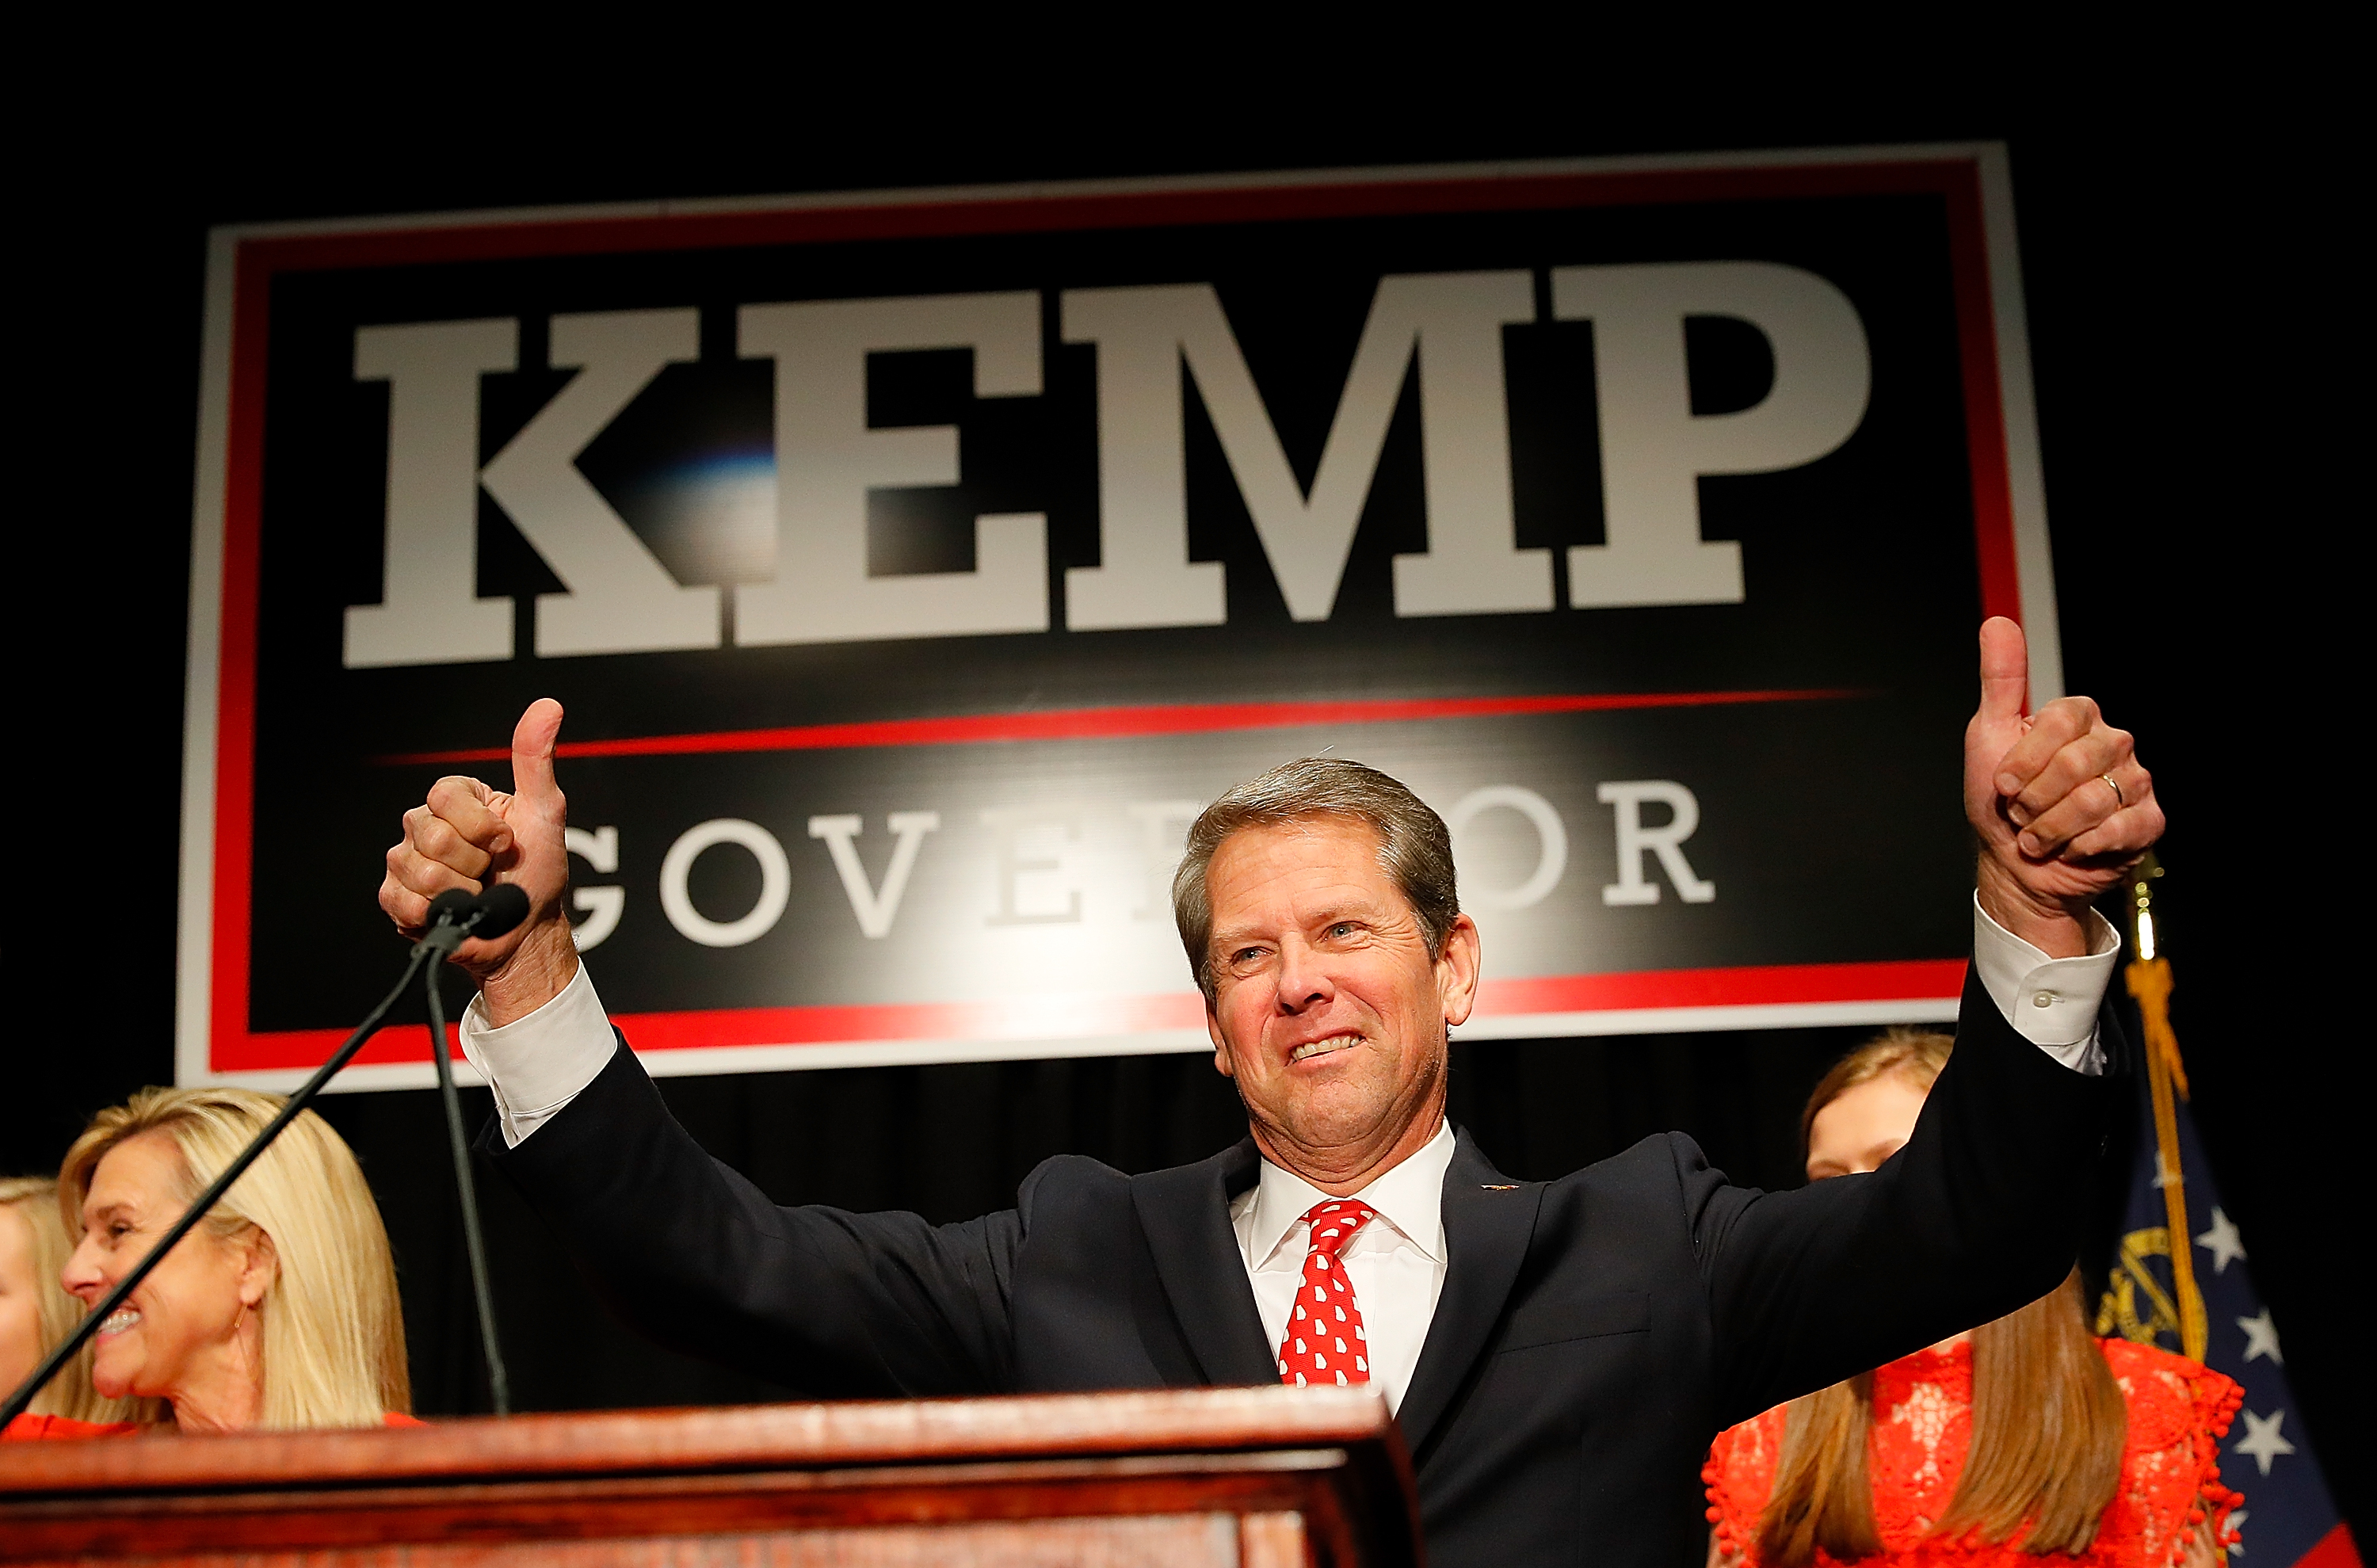 Republican gubernatorial candidate Brian Kemp attends the Election Night event at the Classic Center on November 6, 2018 in Athens, Georgia. Kemp is in a close race with Democrat Stacey Abrams. (Photo by Kevin C. Cox/Getty Images)